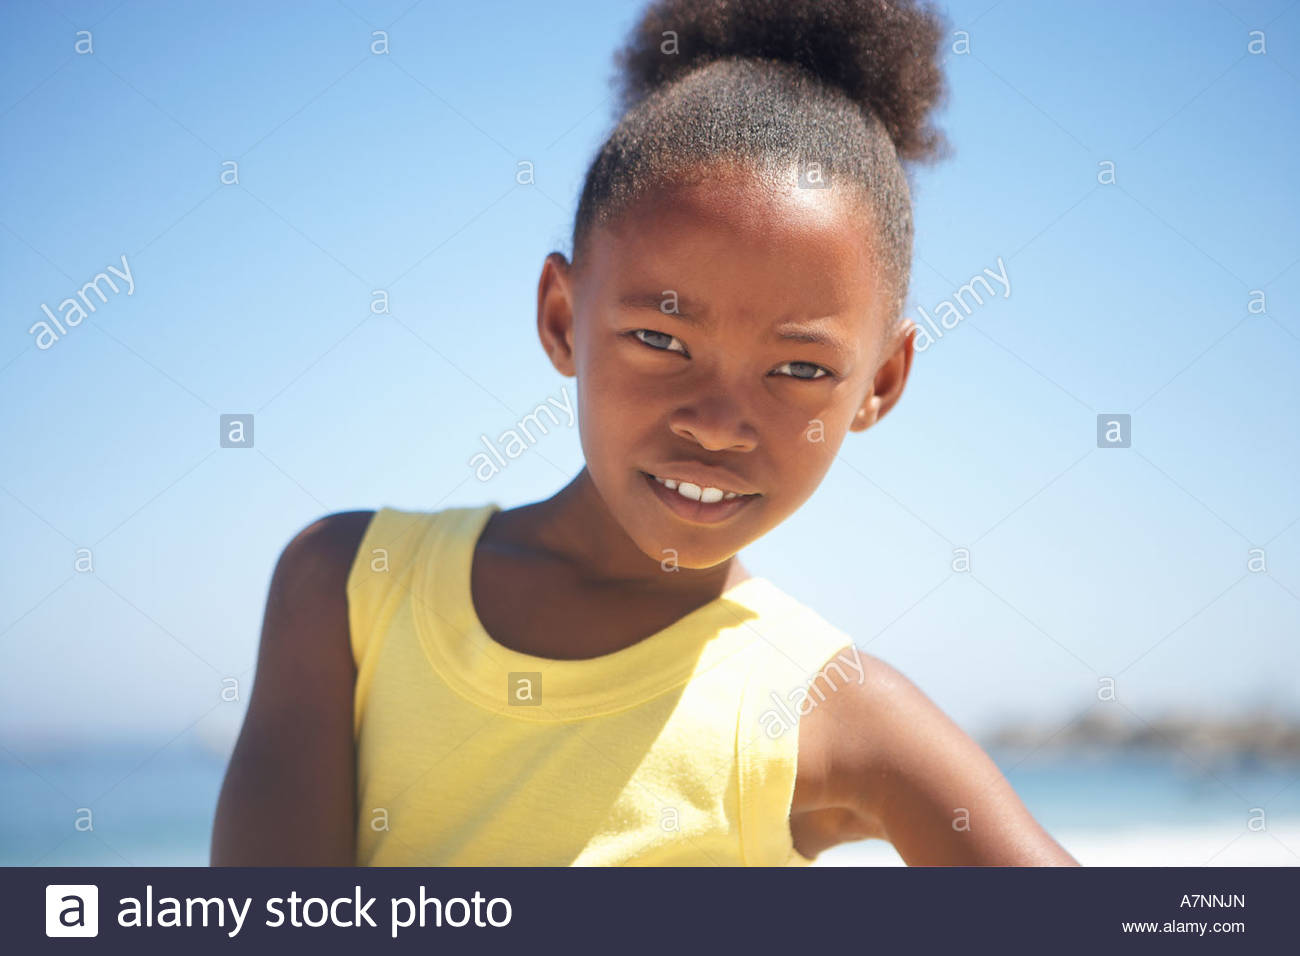 Girl 8 10 in yellow vest standing on beach smiling close up portrait - Stock Image